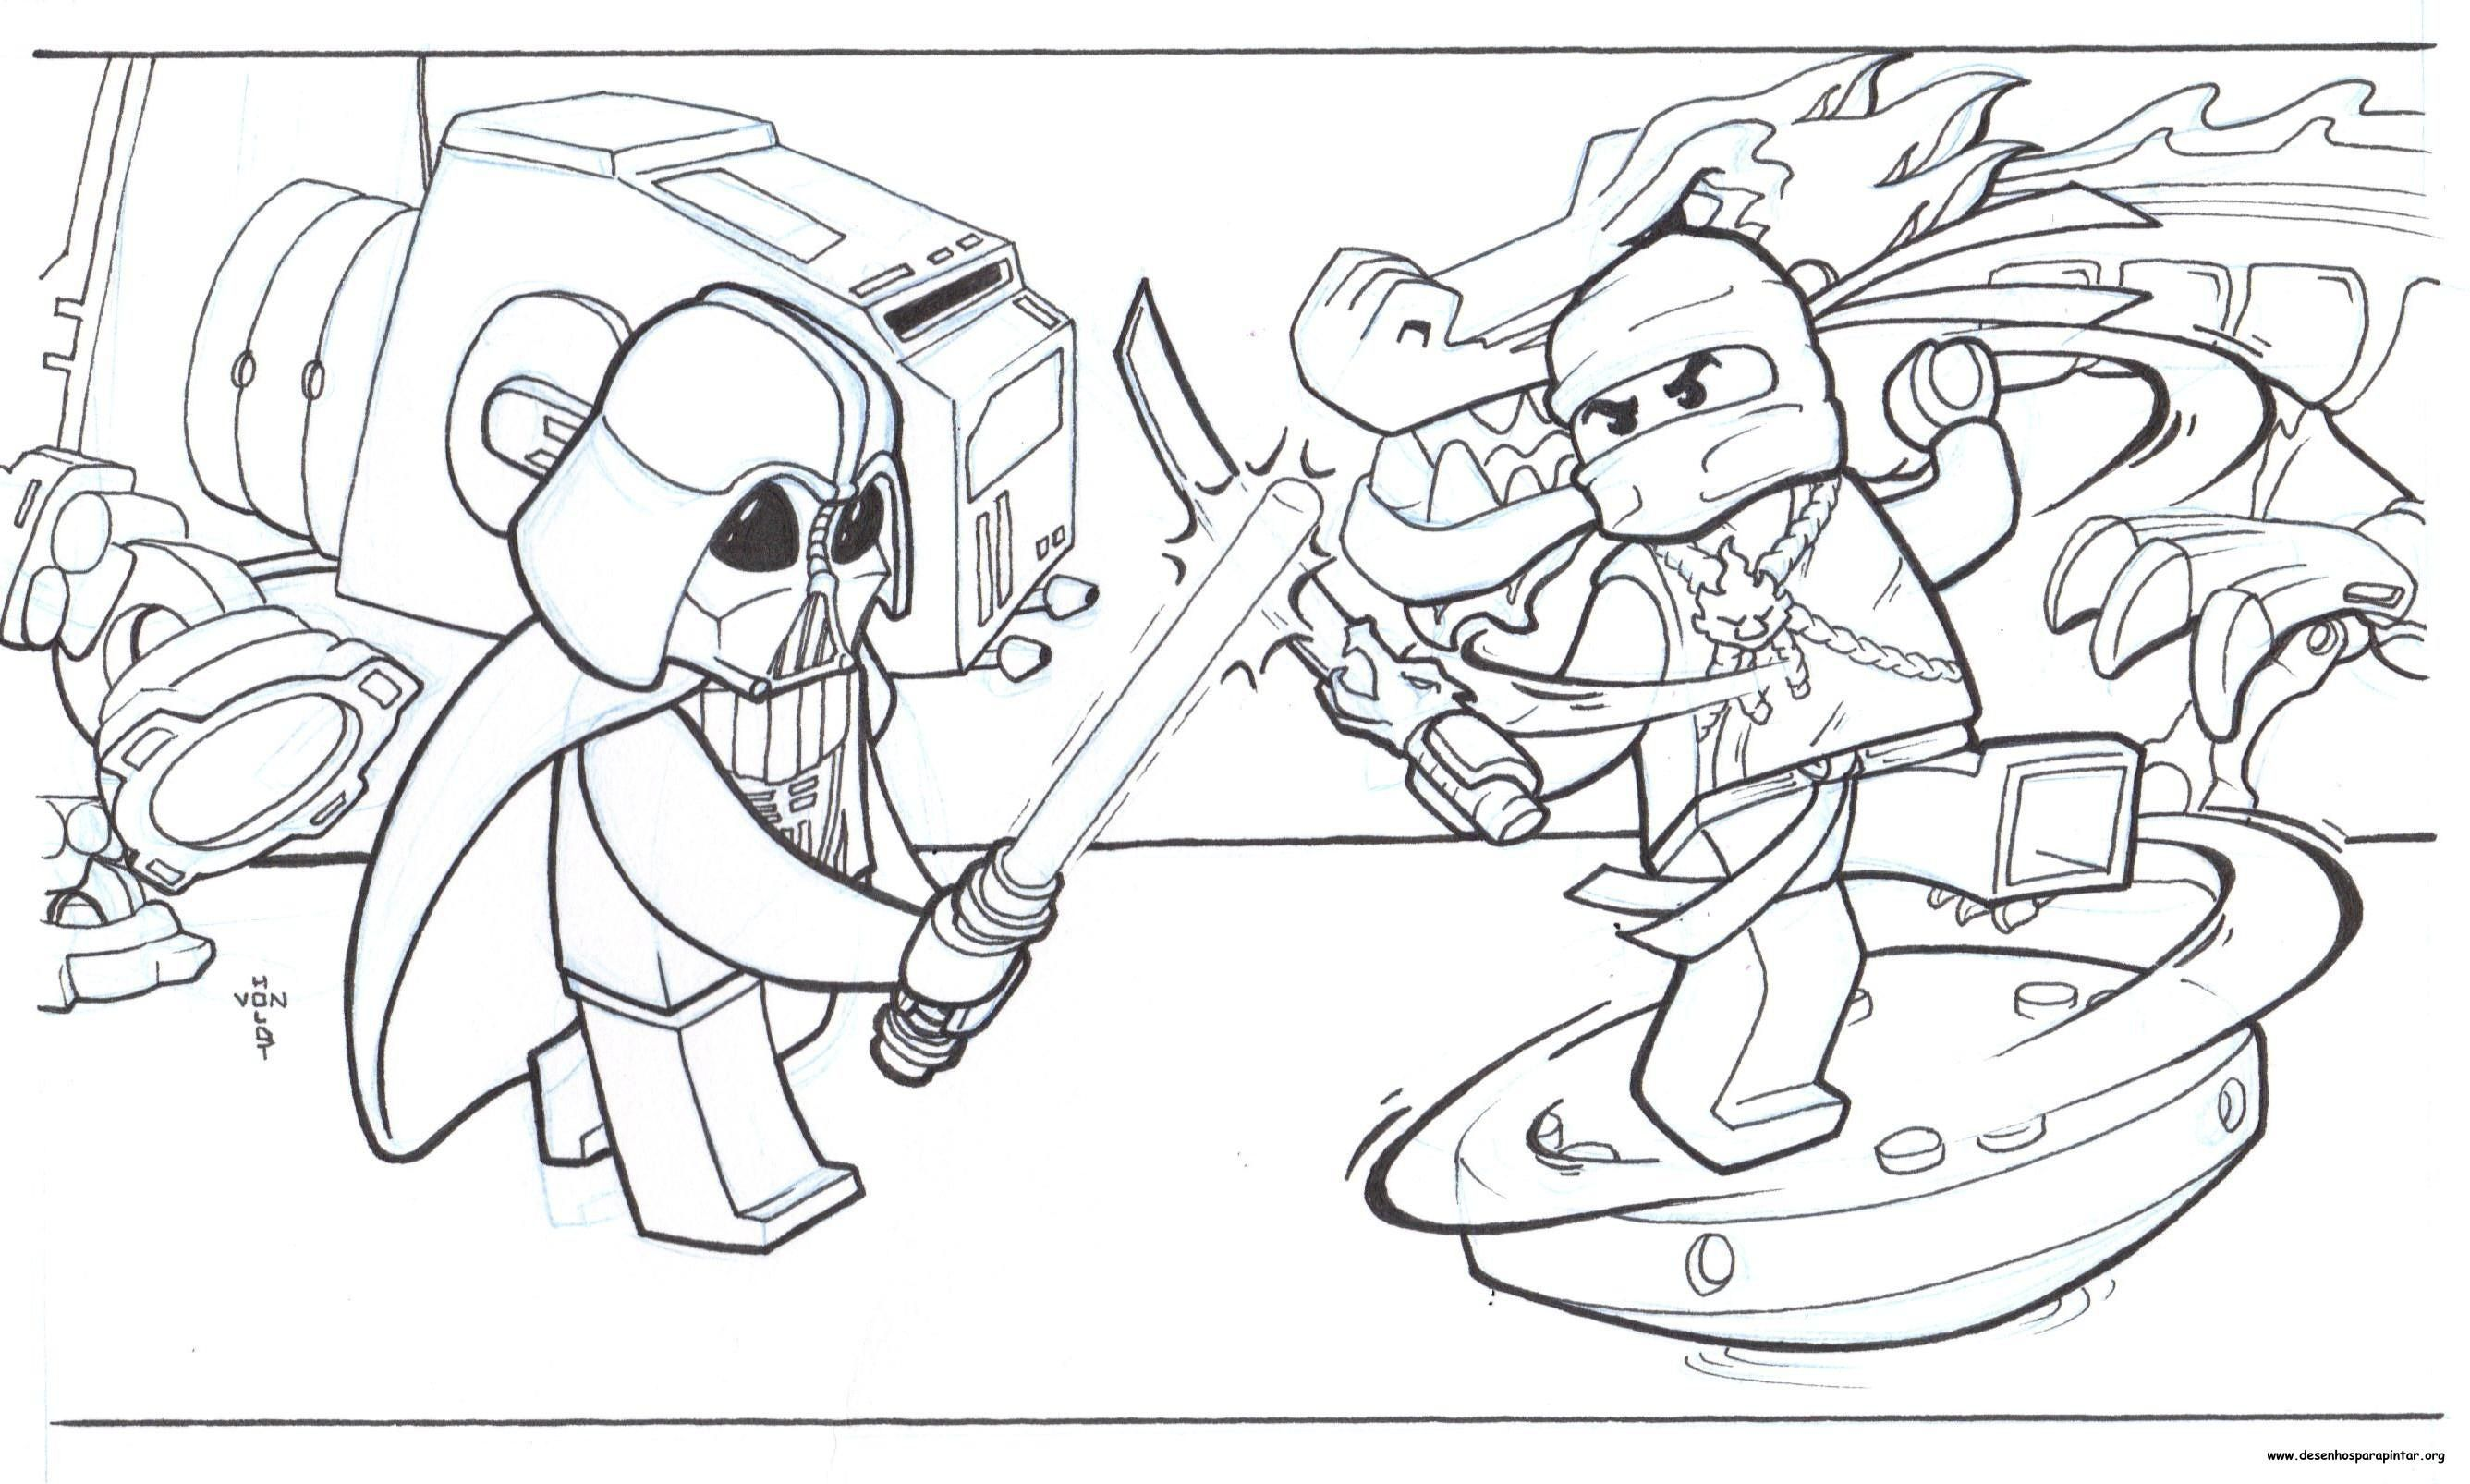 Coloring Pages For Recolor Ninjago Coloring Pages Lego Coloring Pages Avengers Coloring Pages [ 1606 x 2673 Pixel ]